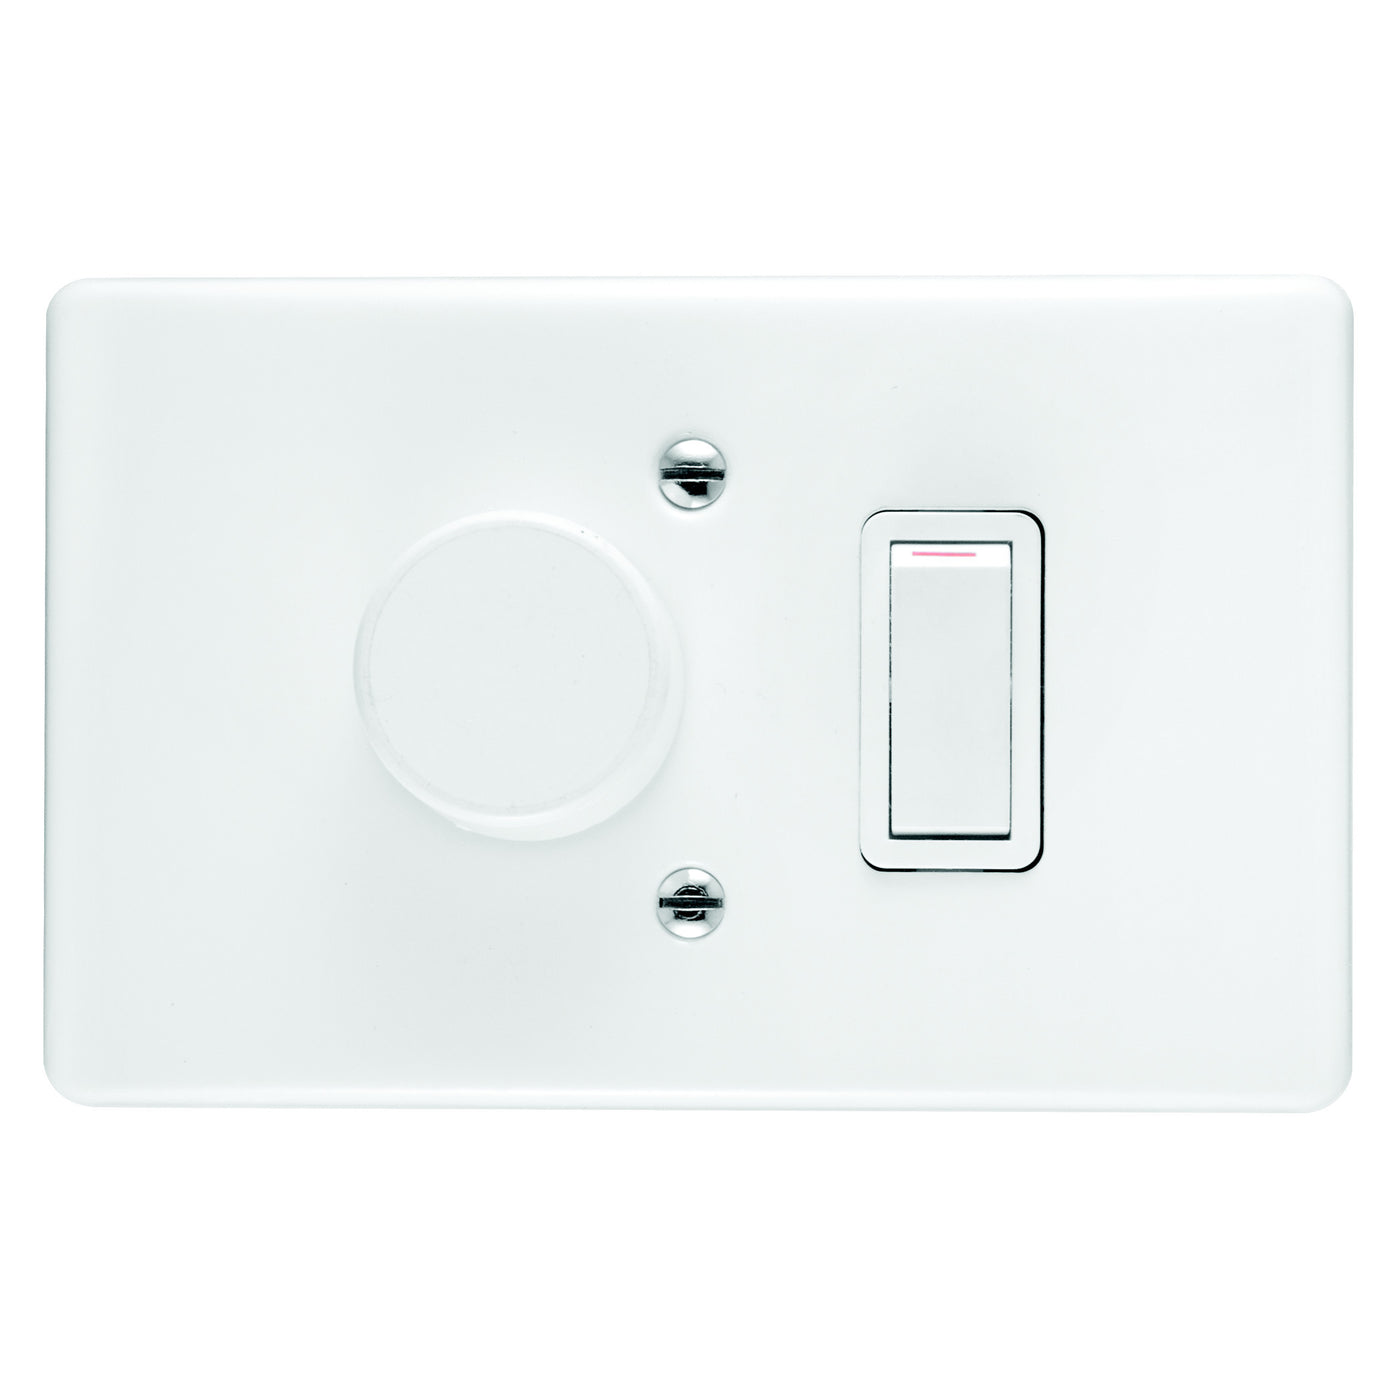 CRABTREE CLASSIC DIMMER SWITCH 1 LEVER COVER 4X2 500W LED